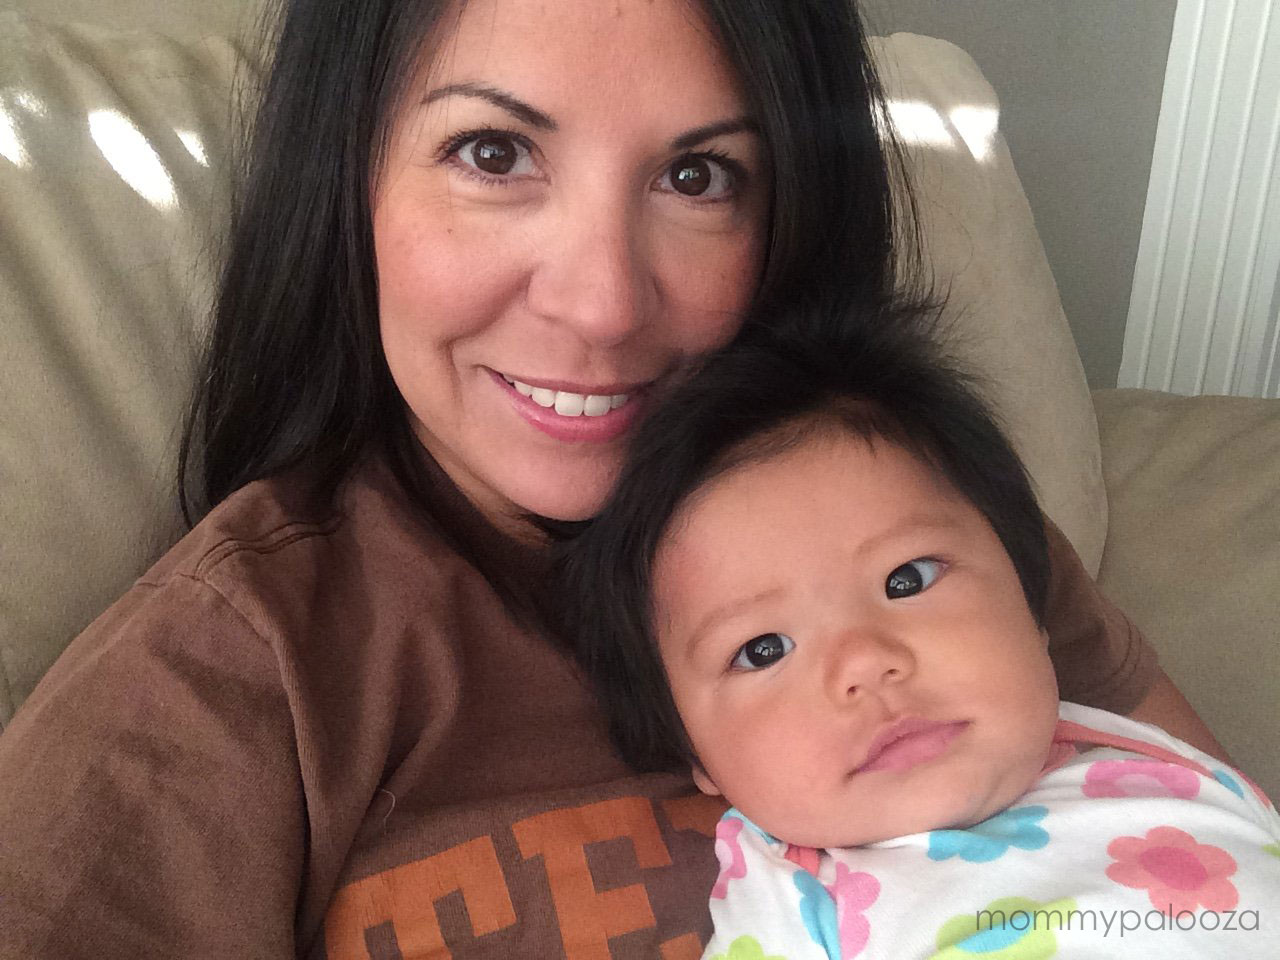 mommypalooza and baby selfie